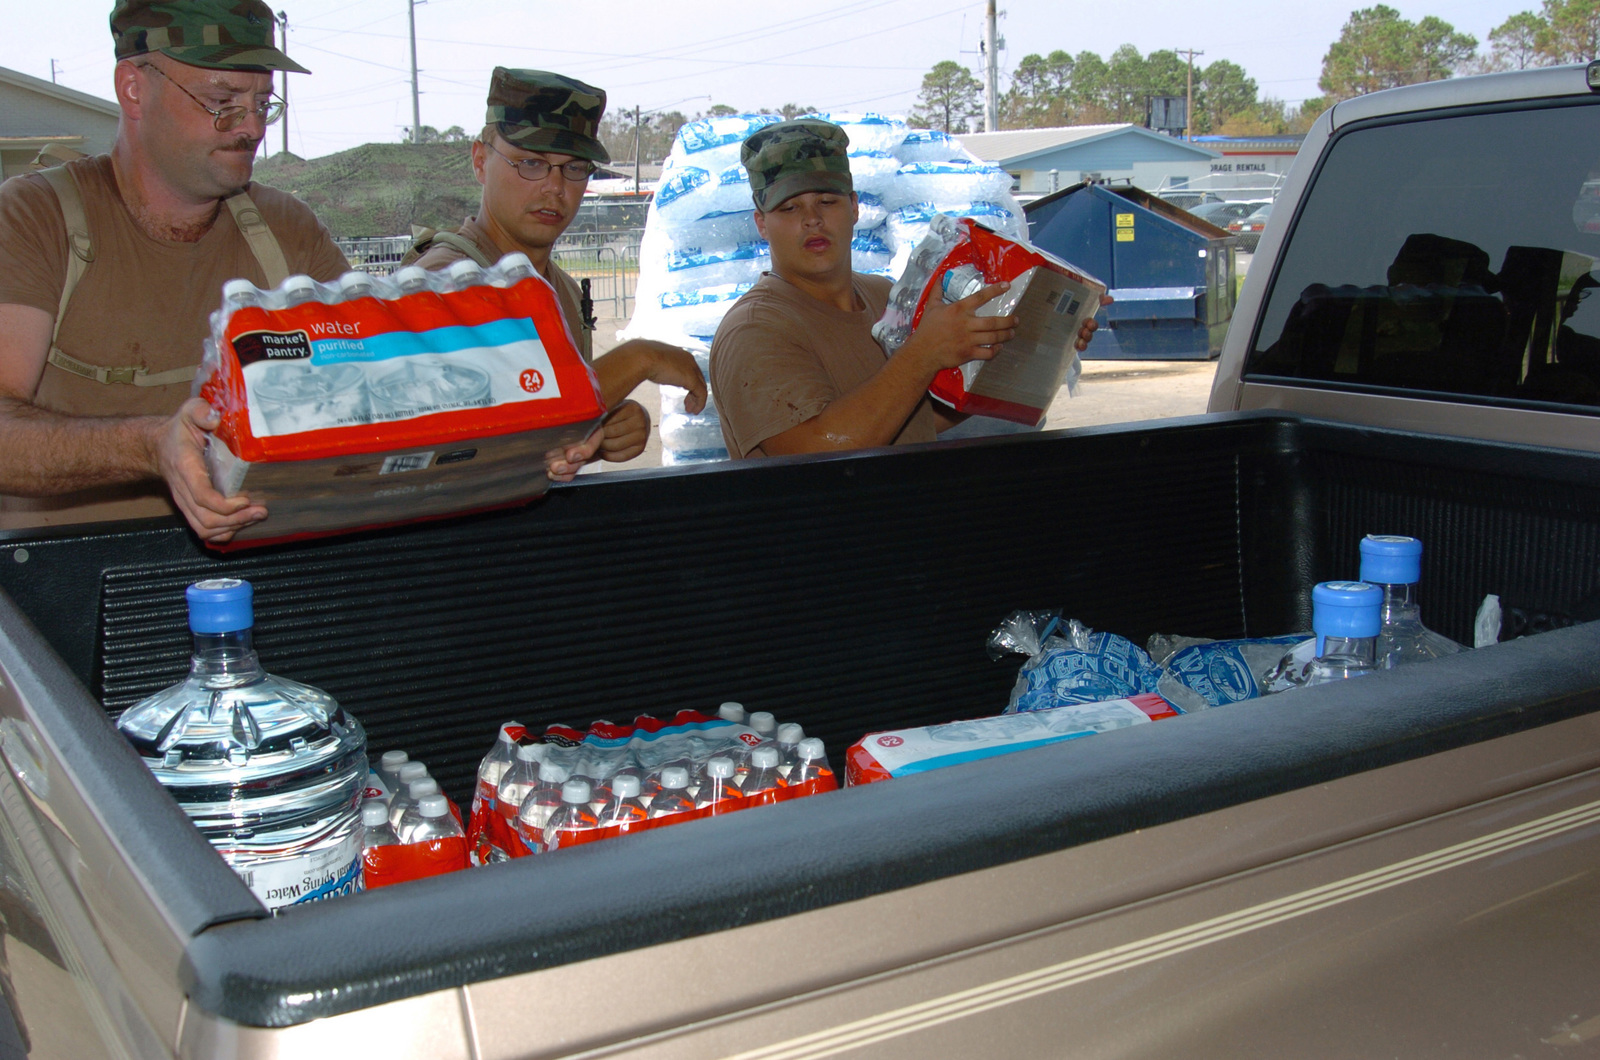 Michigan Army National Guard (MIARNG) (left to right), Sergeant (SGT) David Moore, SPECIALIST (SPC) Joshua Rushlow and Private First Class (PFC) Brent Halfma, with the Taylor, Michigan (MI), 1776th Military Police Company (MPC), assist with water and ice distribution at the Pascagoula Fairgrounds, Mississippi (MS). The 1776th MPC is deployed to Mississippi to augment local law enforcement agencies and provide humanitarian assistance in support of Operation KATRINA RELIEF. (A3596)